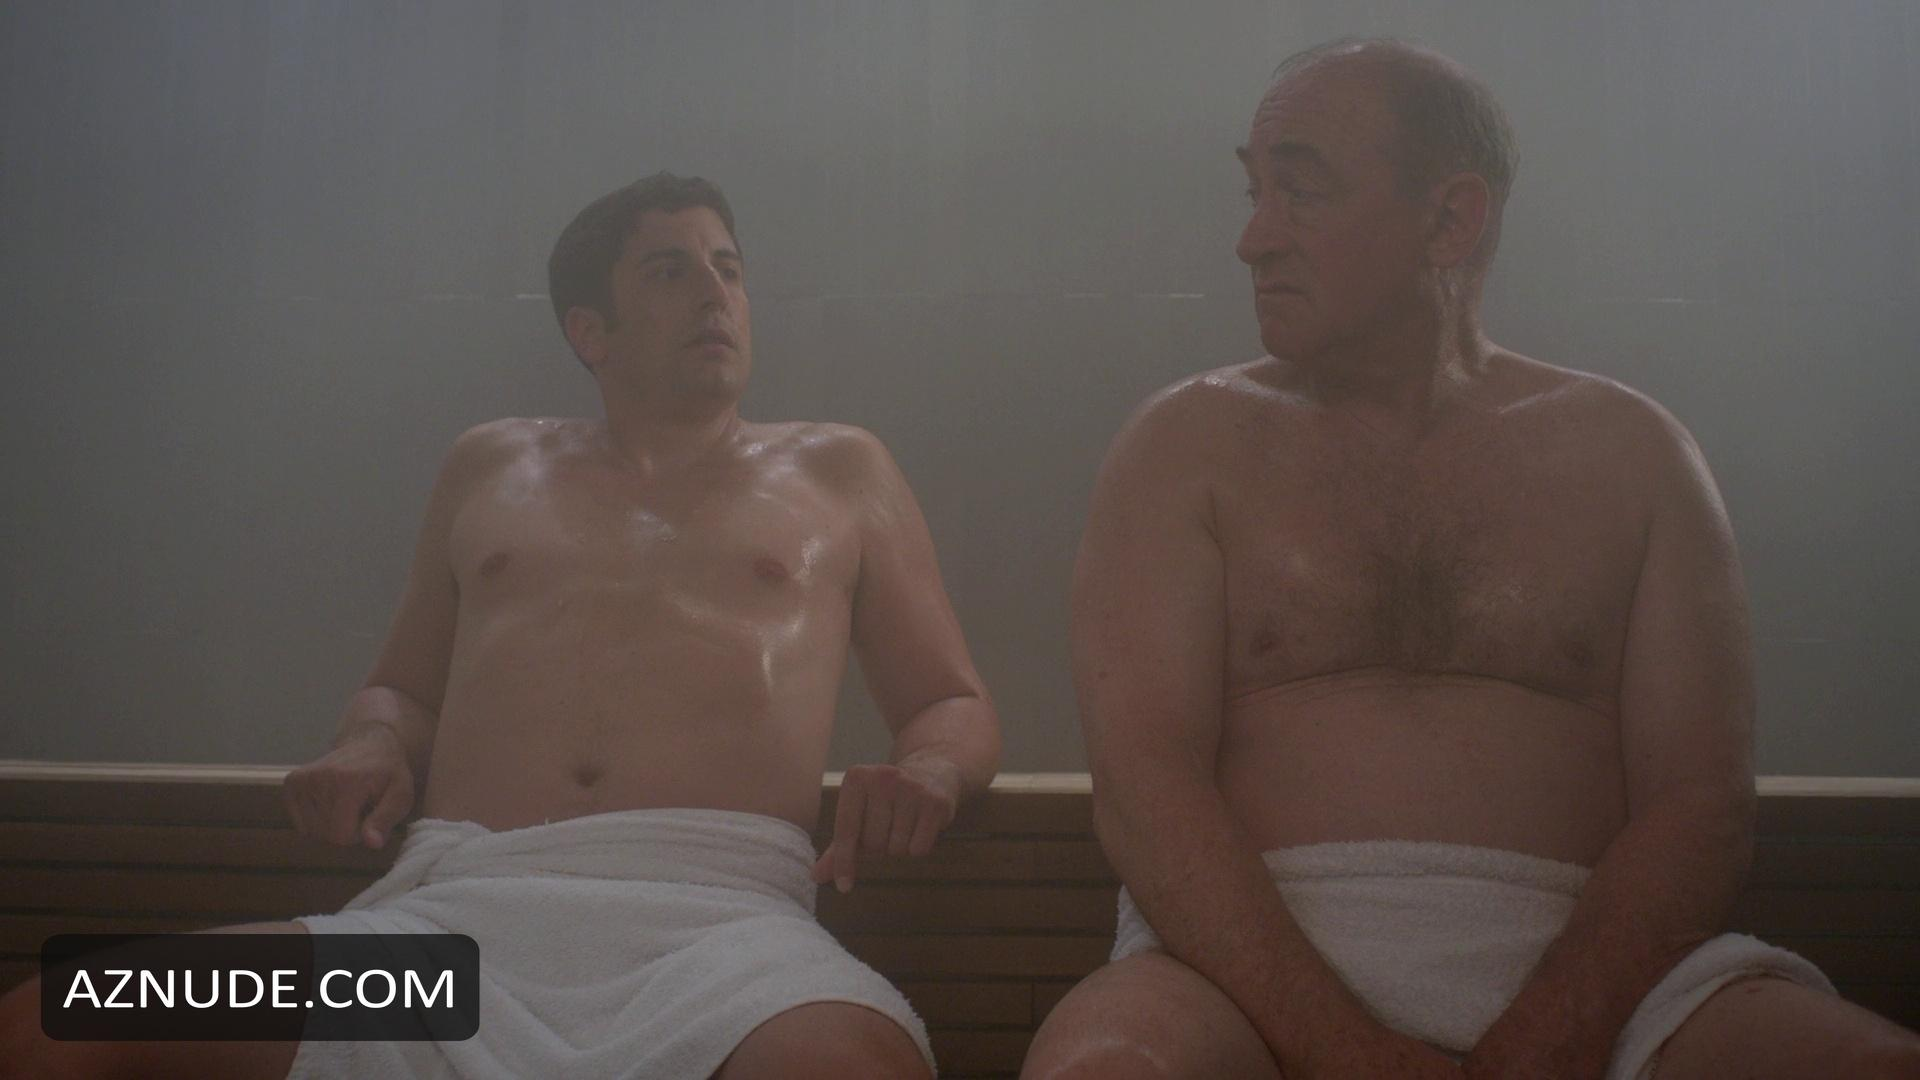 Remarkable, very Jason biggs naked fucking well. What